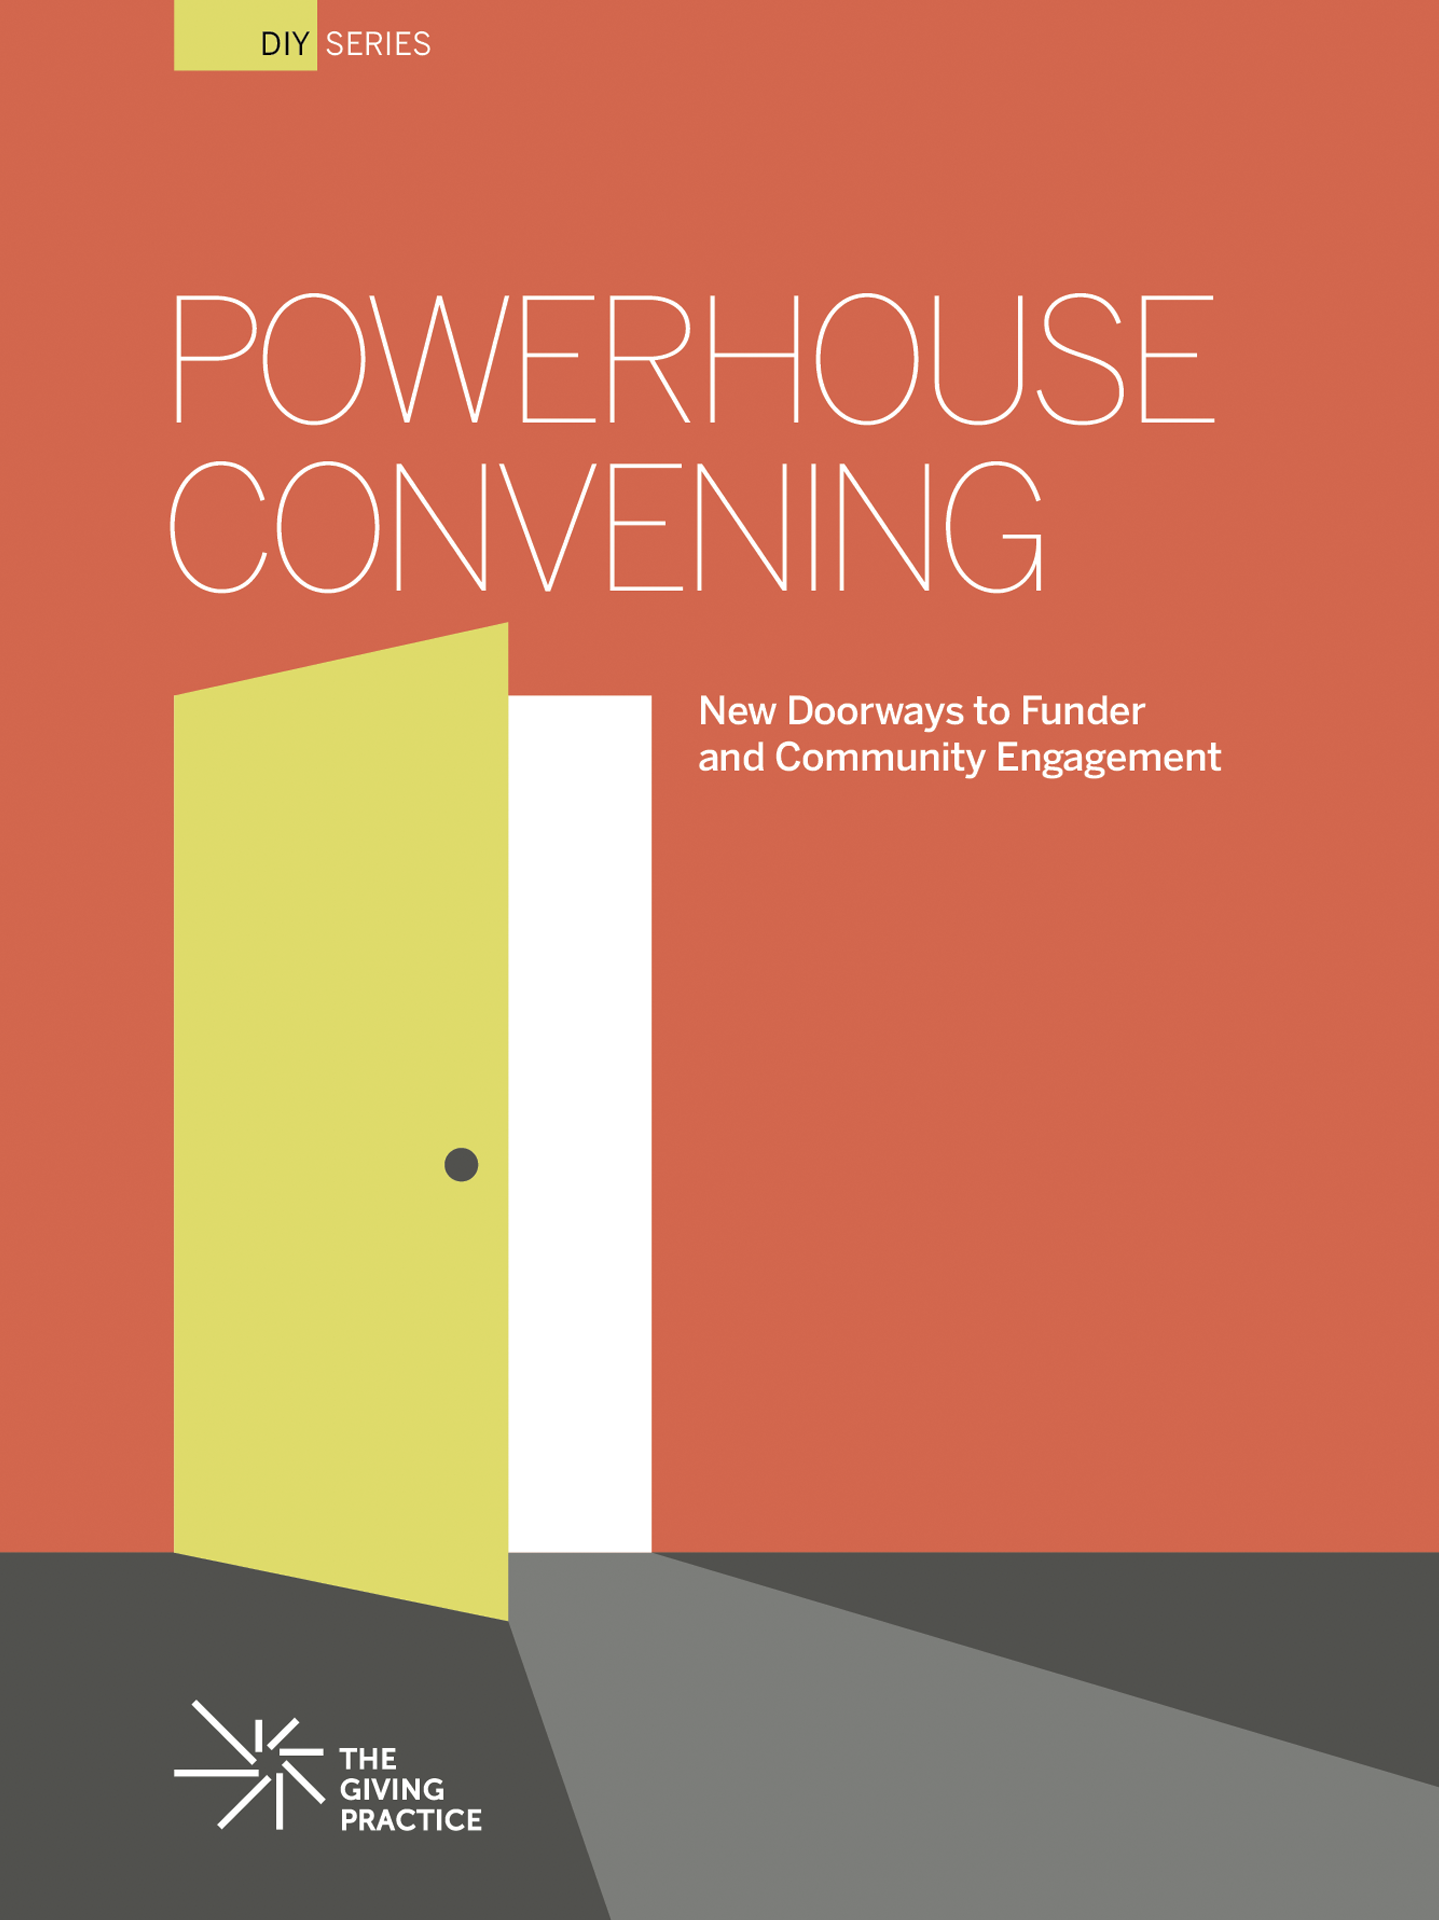 Thumbnail of guide cover, entitled Powerhouse Convening: New Doorways to Funder and Community Engagement. Image shows a graphic of a green door opening against and orange background.